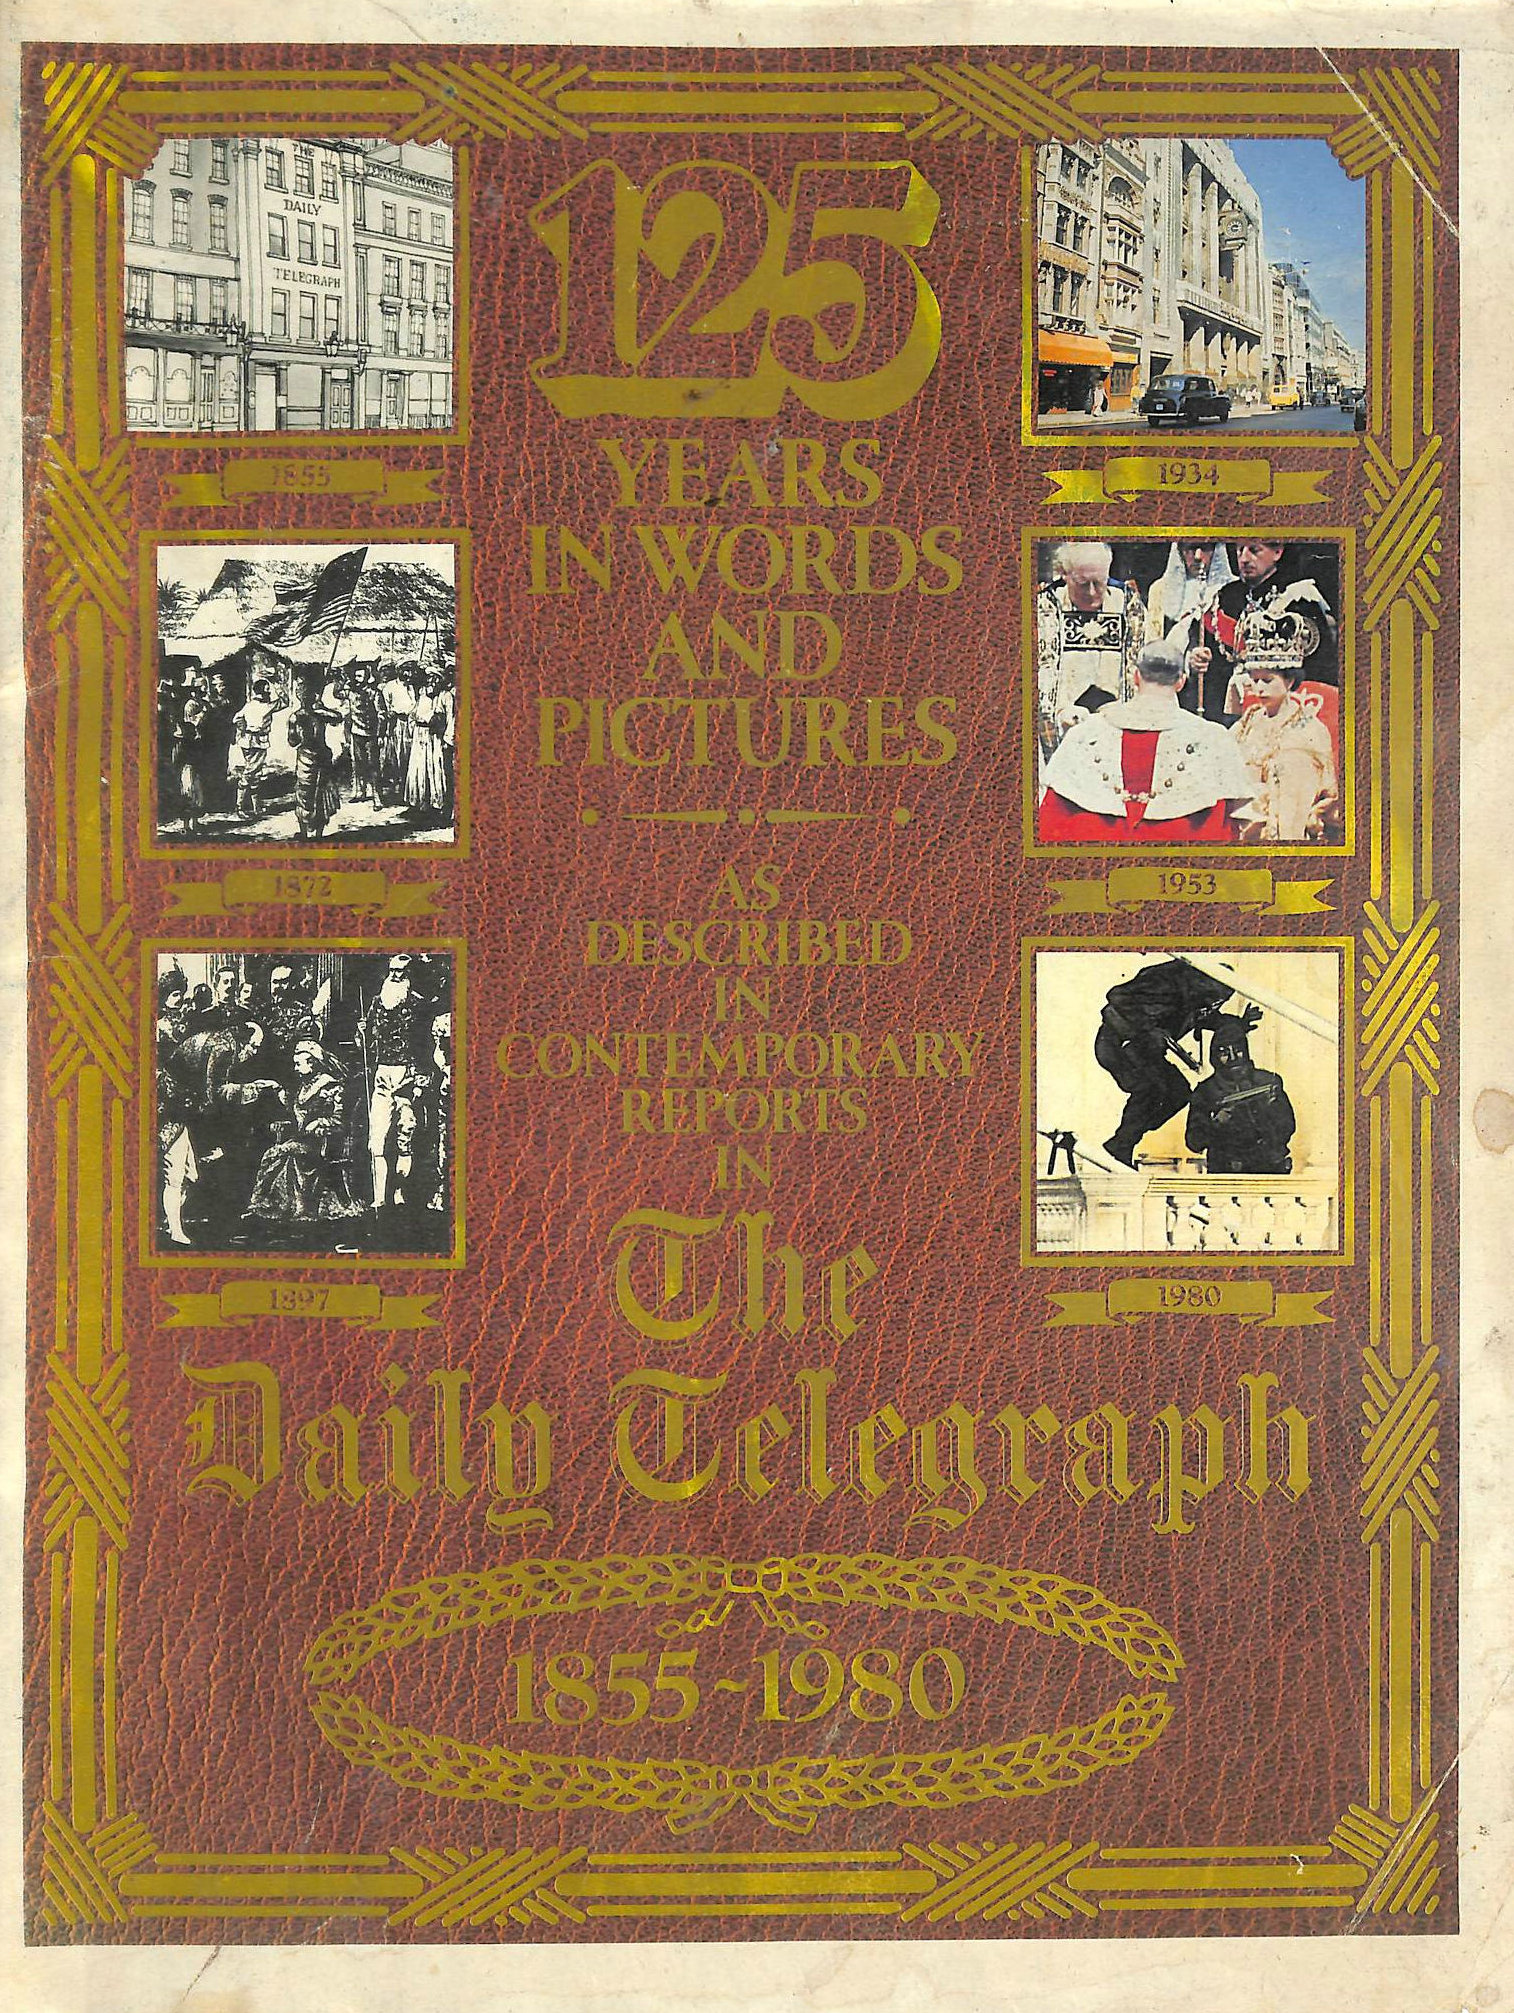 Image for 125 Years In Words And Pictures As Described In Contemporary Reports In The Daily Telegraph, 1855-1980